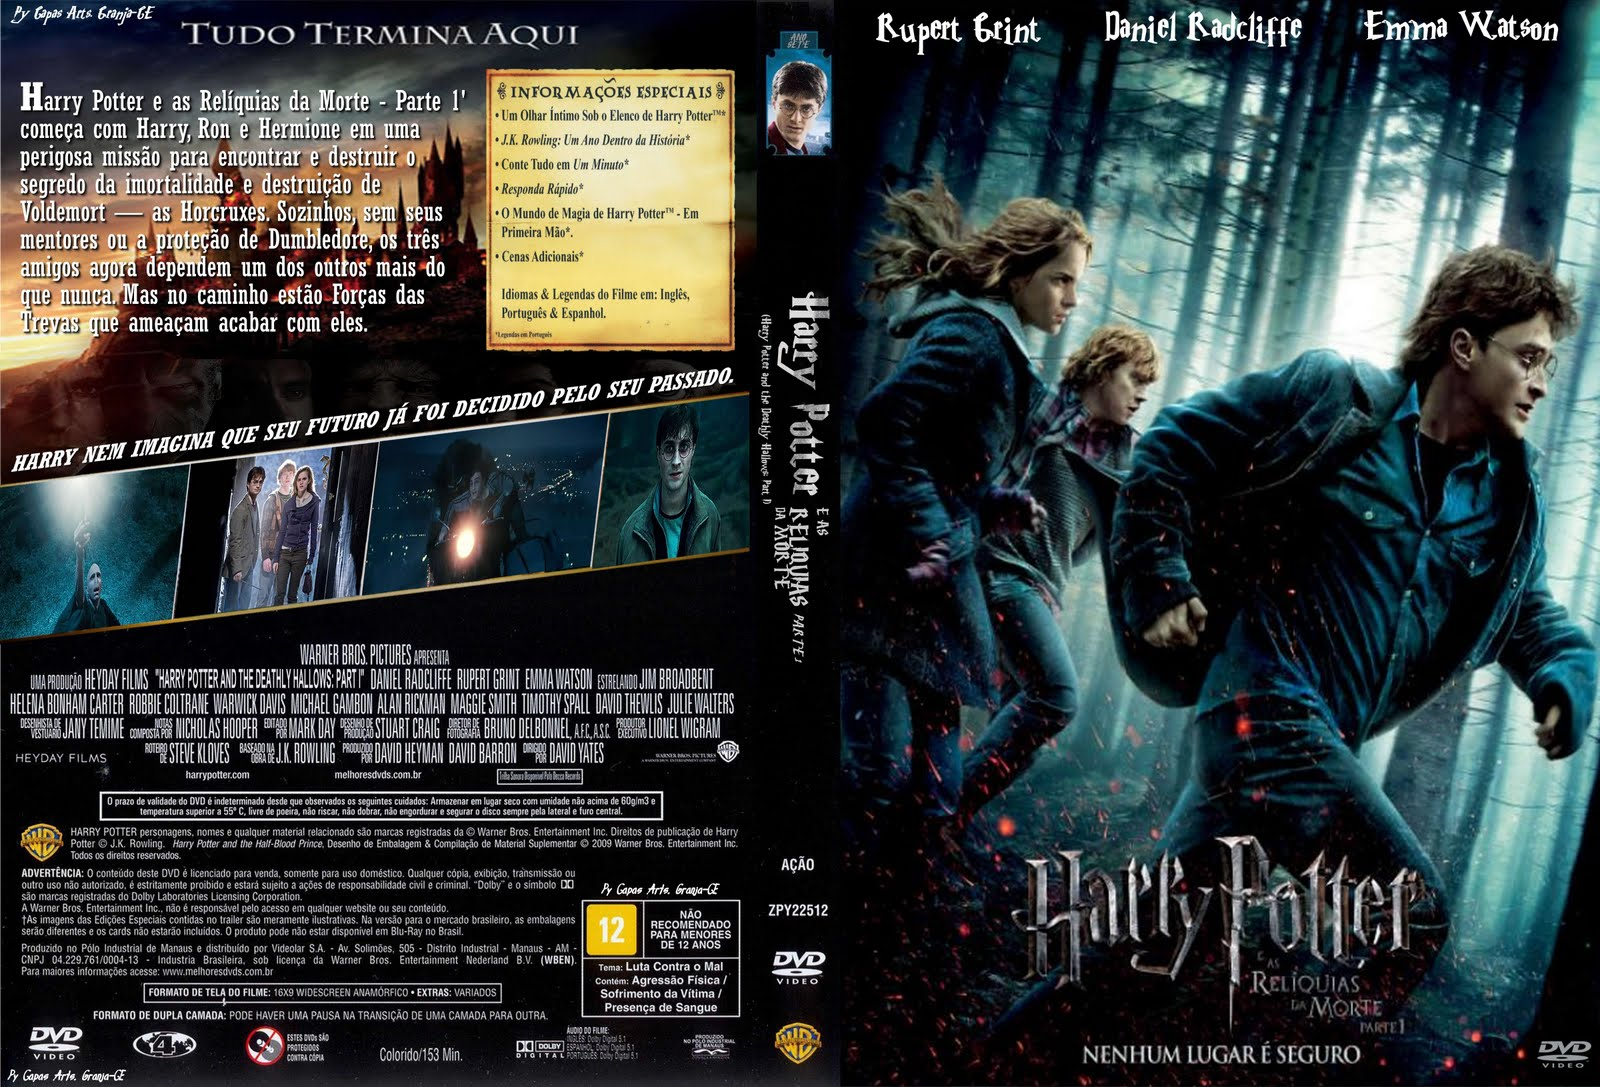 filme harry potter eas reliquias da morte parte 1